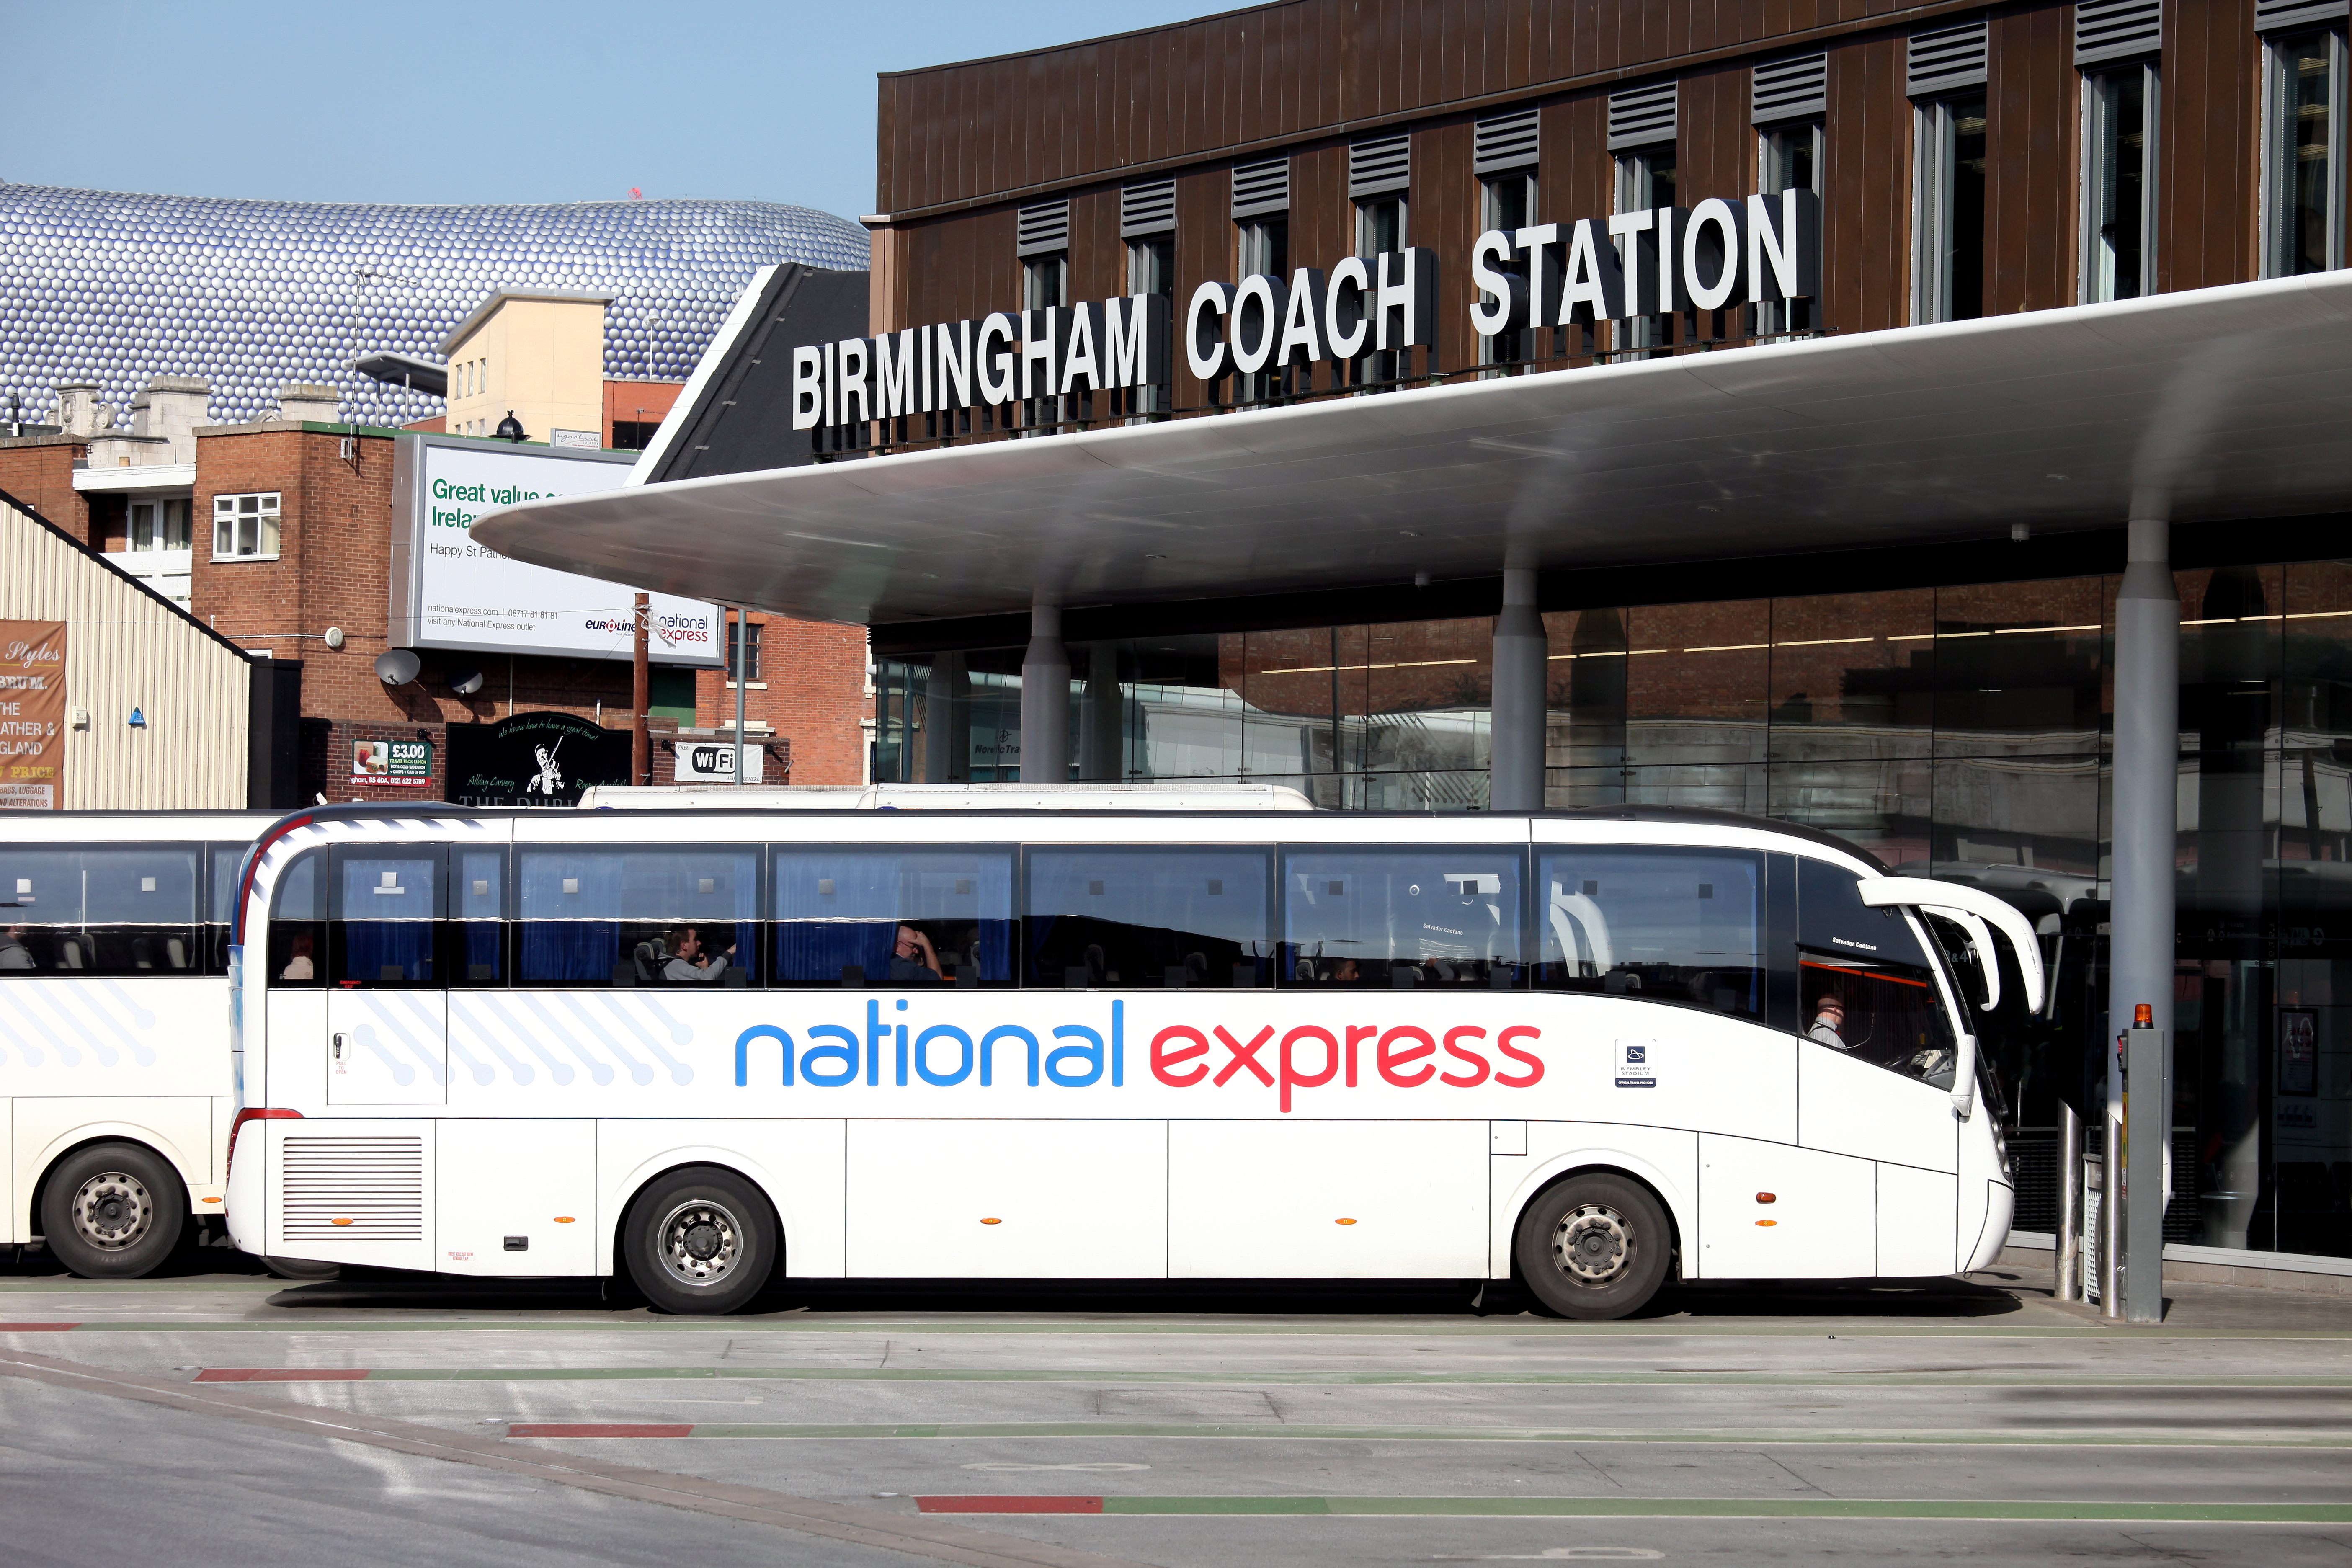 National Express Coach Bus Birmingham Coach Station Coach Parked Bullring Shopping Centre 10 Best Tips to Make a Long Distance Relationship Work. Long distance relationship tips. Long distance relationship advice. Click through to read more...